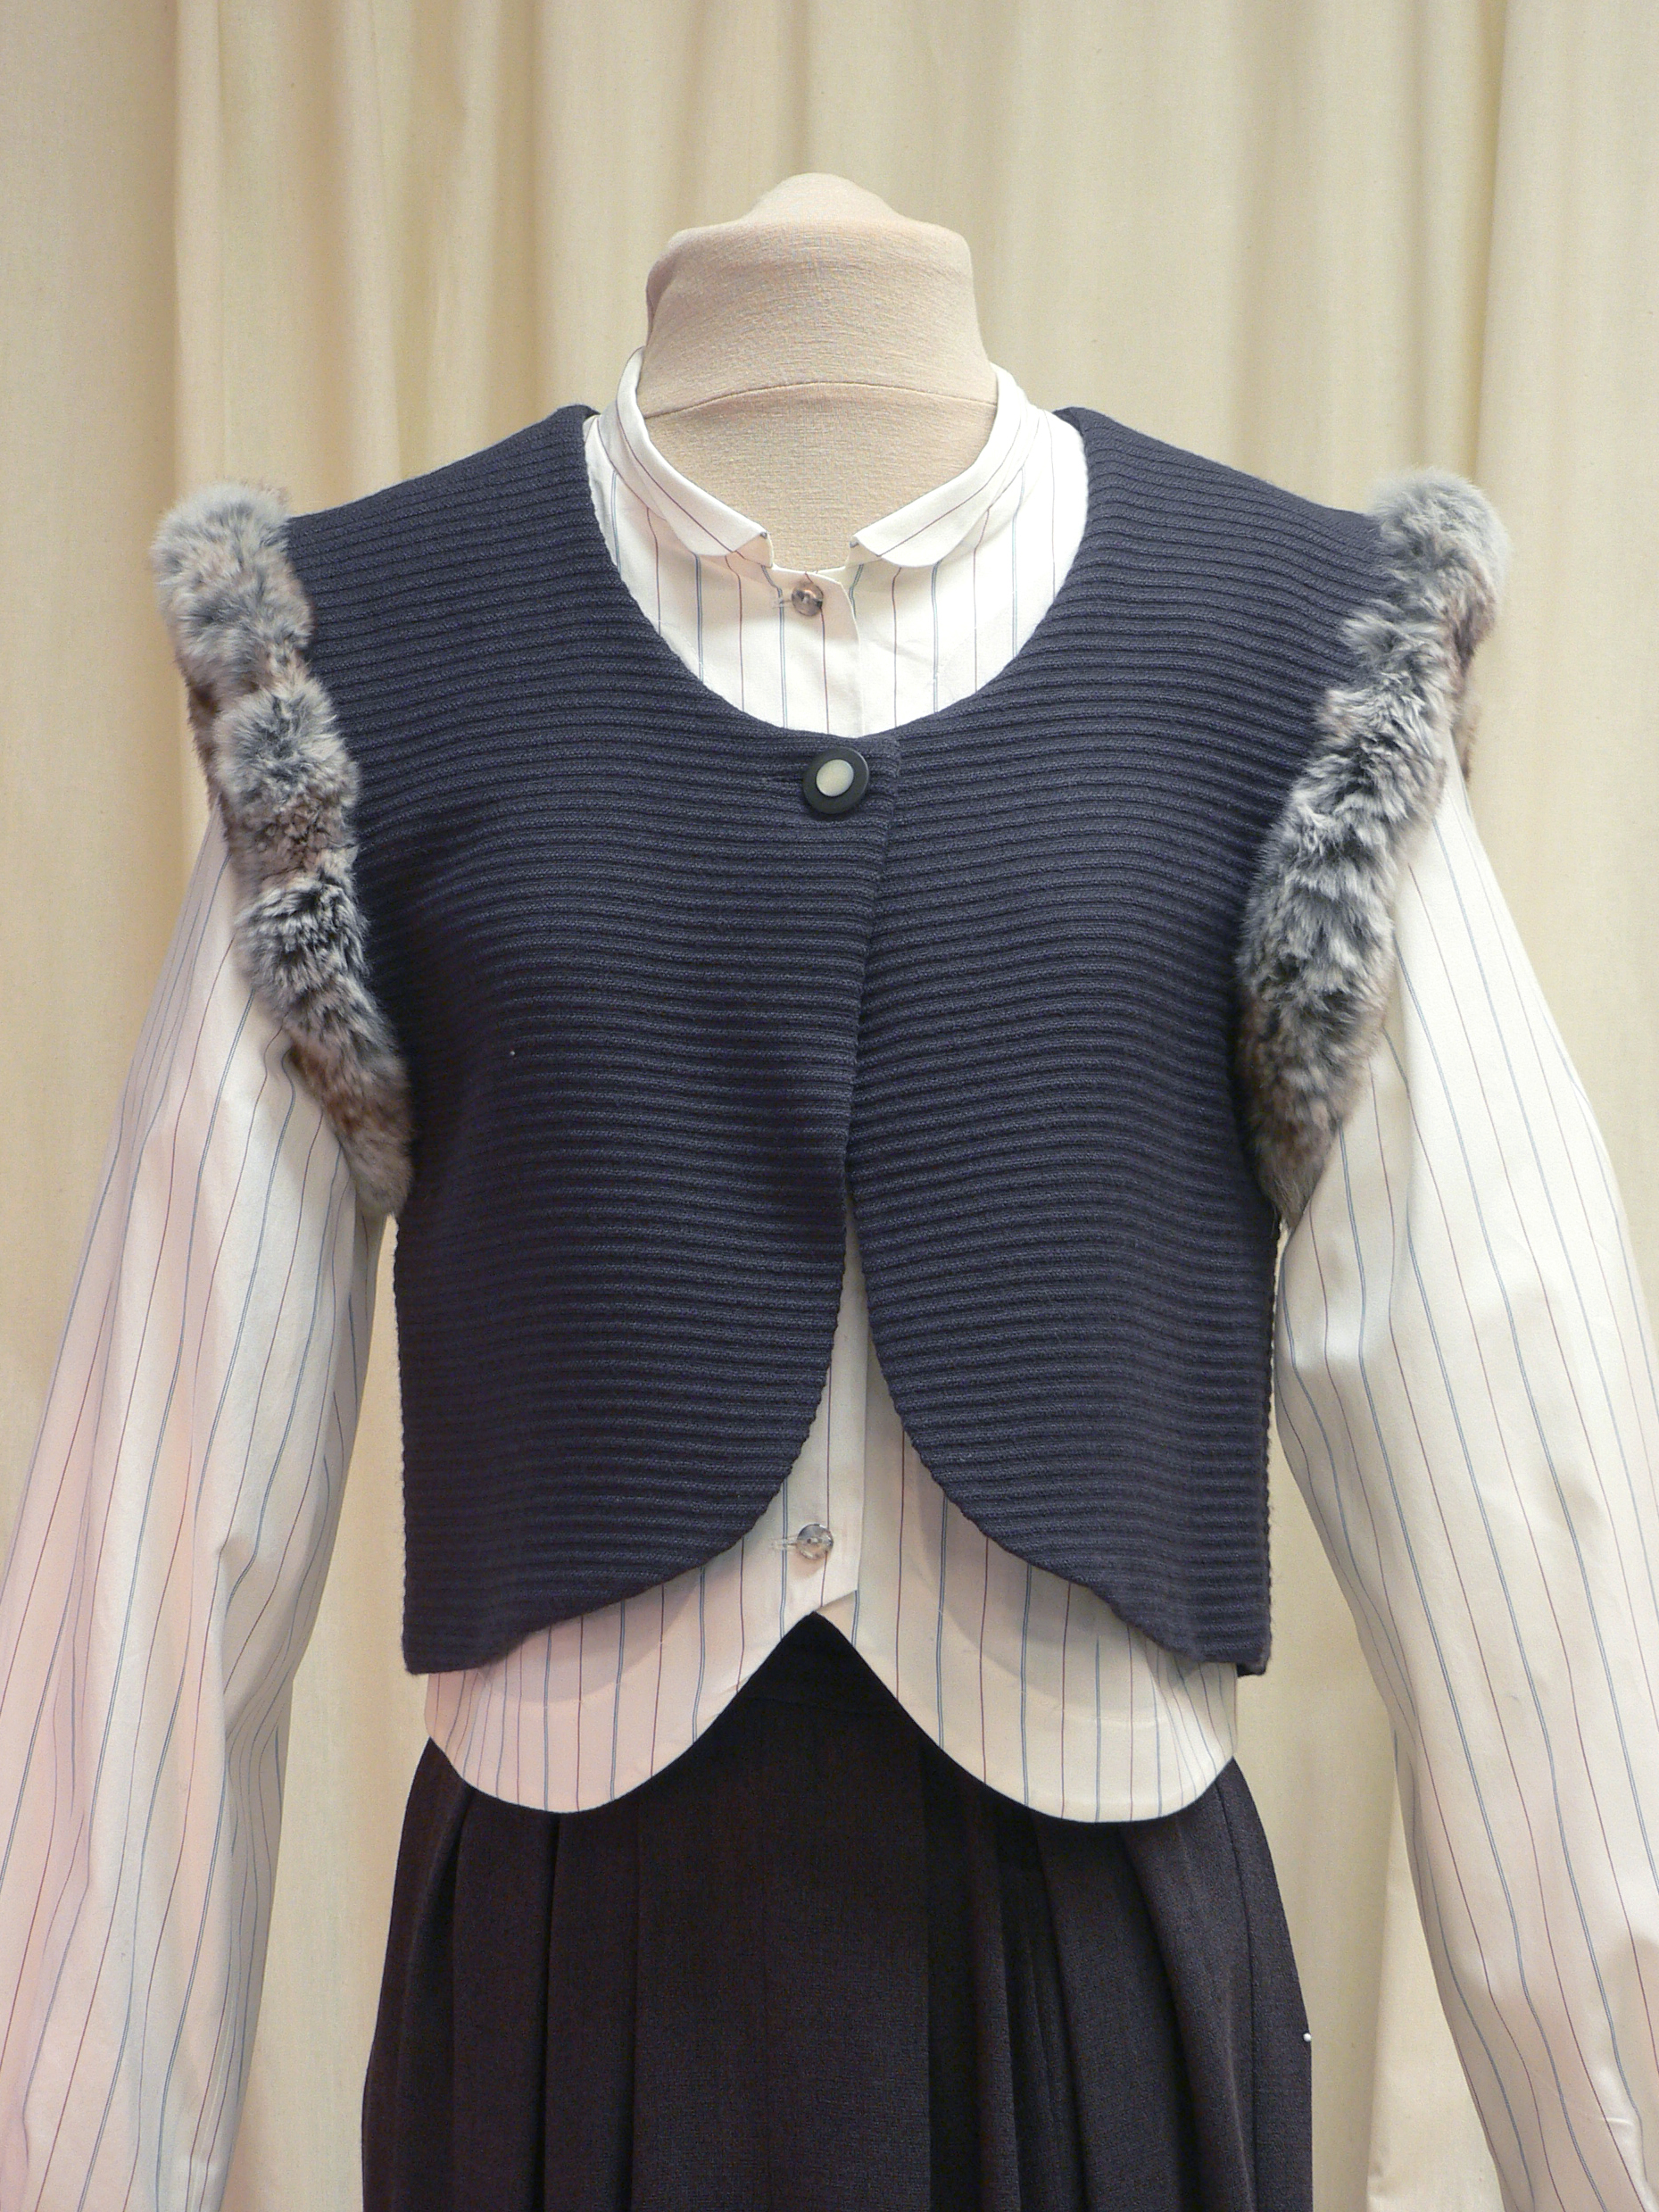 ensemble08_front_detail.jpg